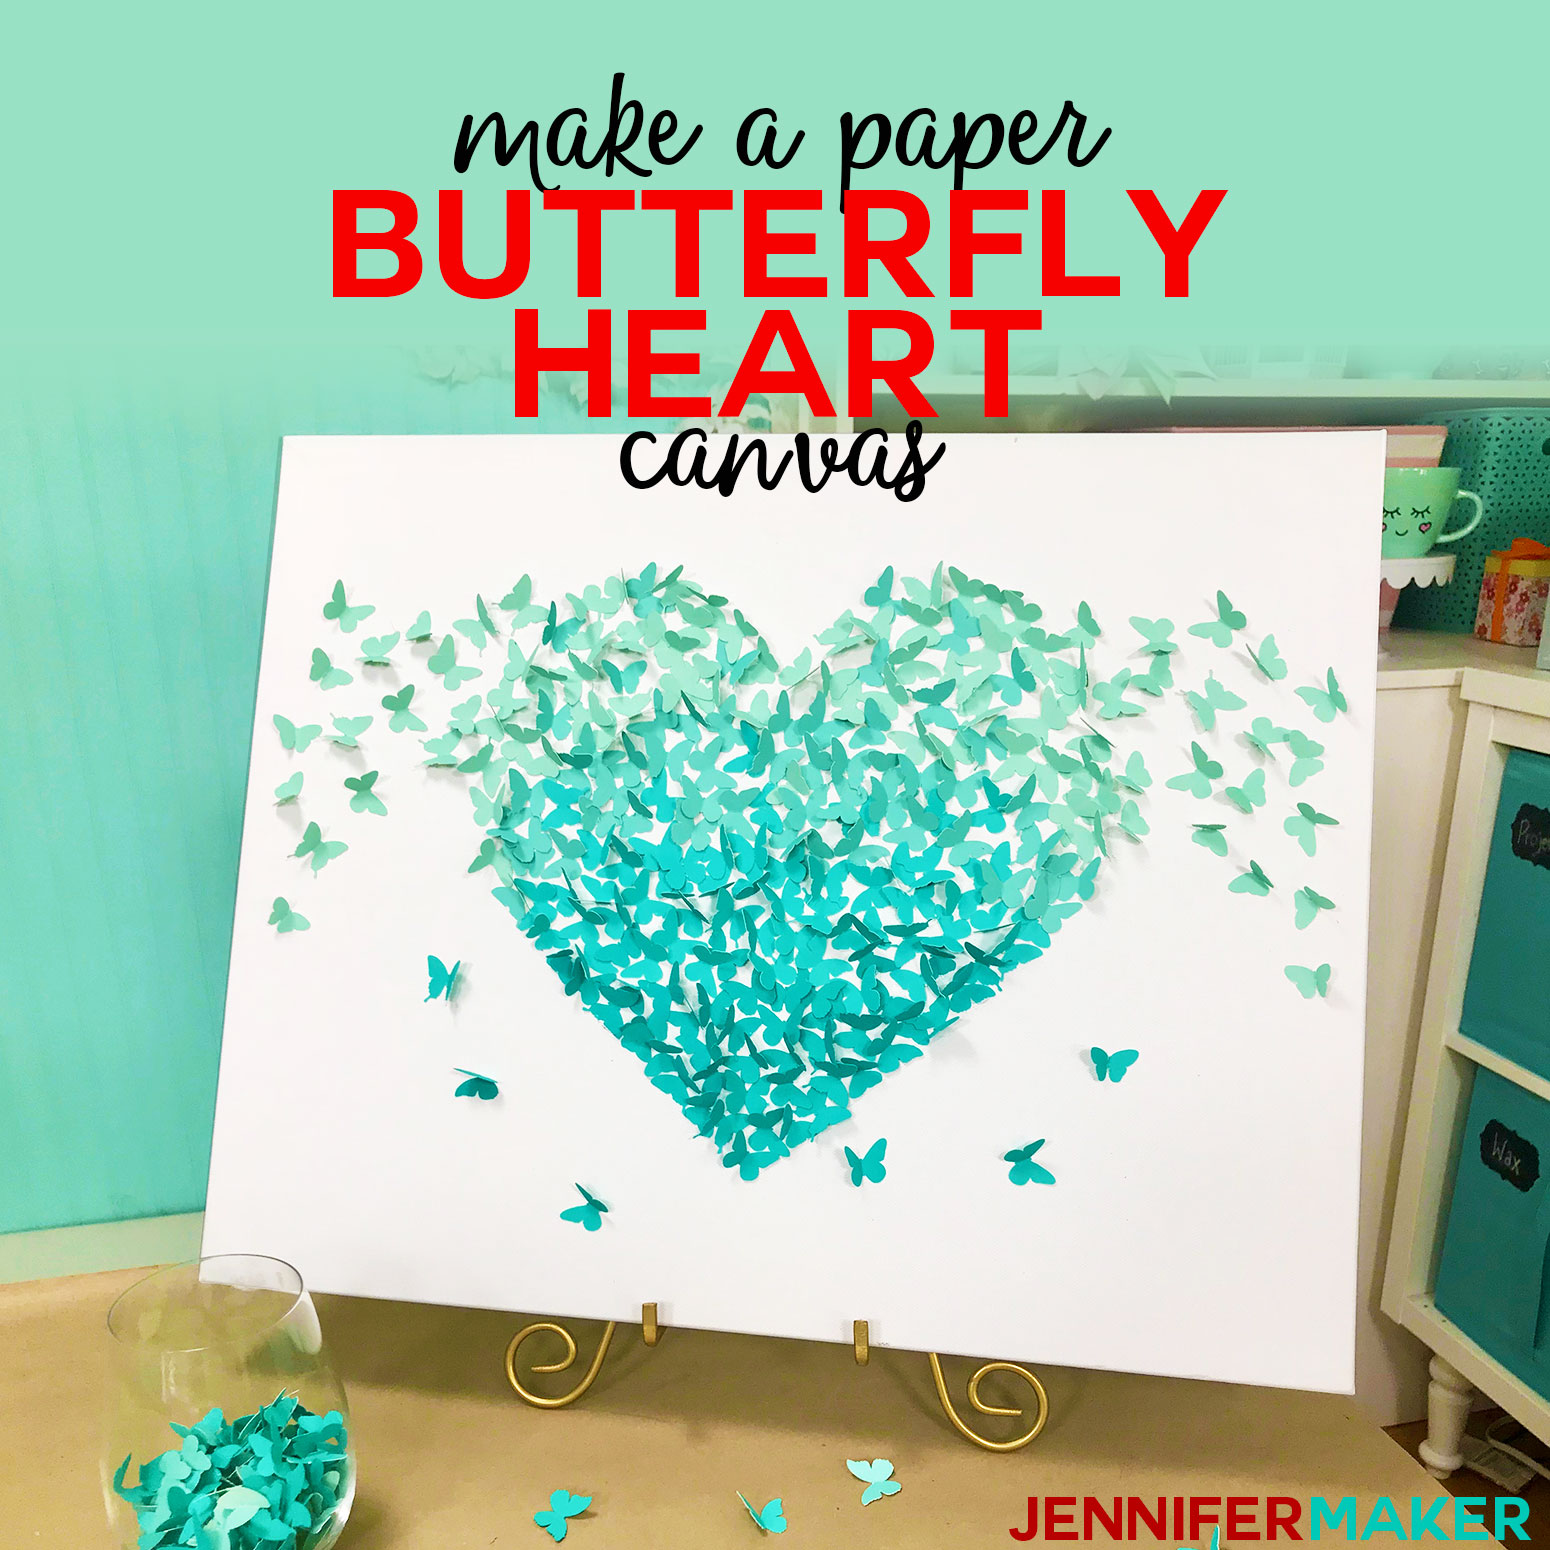 Paper Butterfly Canvas Wall Art Heart On Cricut Jennifer Maker